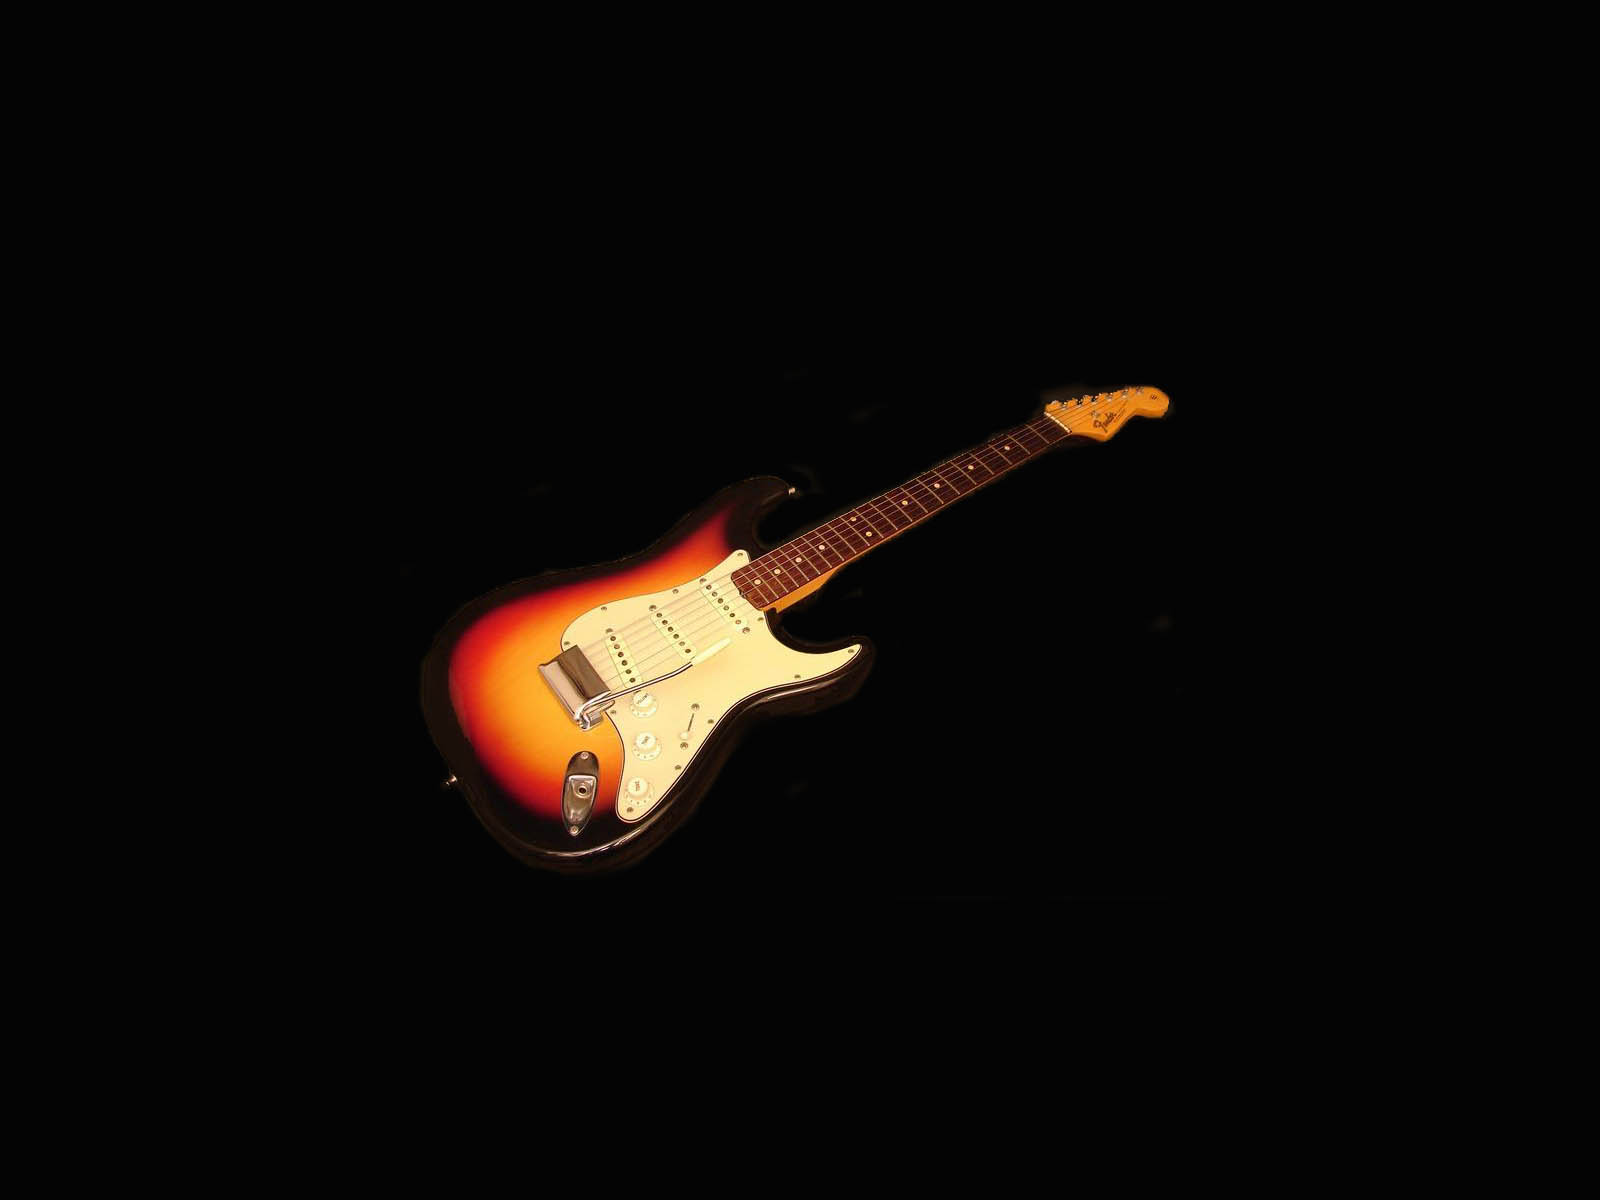 Pc Wallpaper Guitar Photos Free For Pc Backgrounds